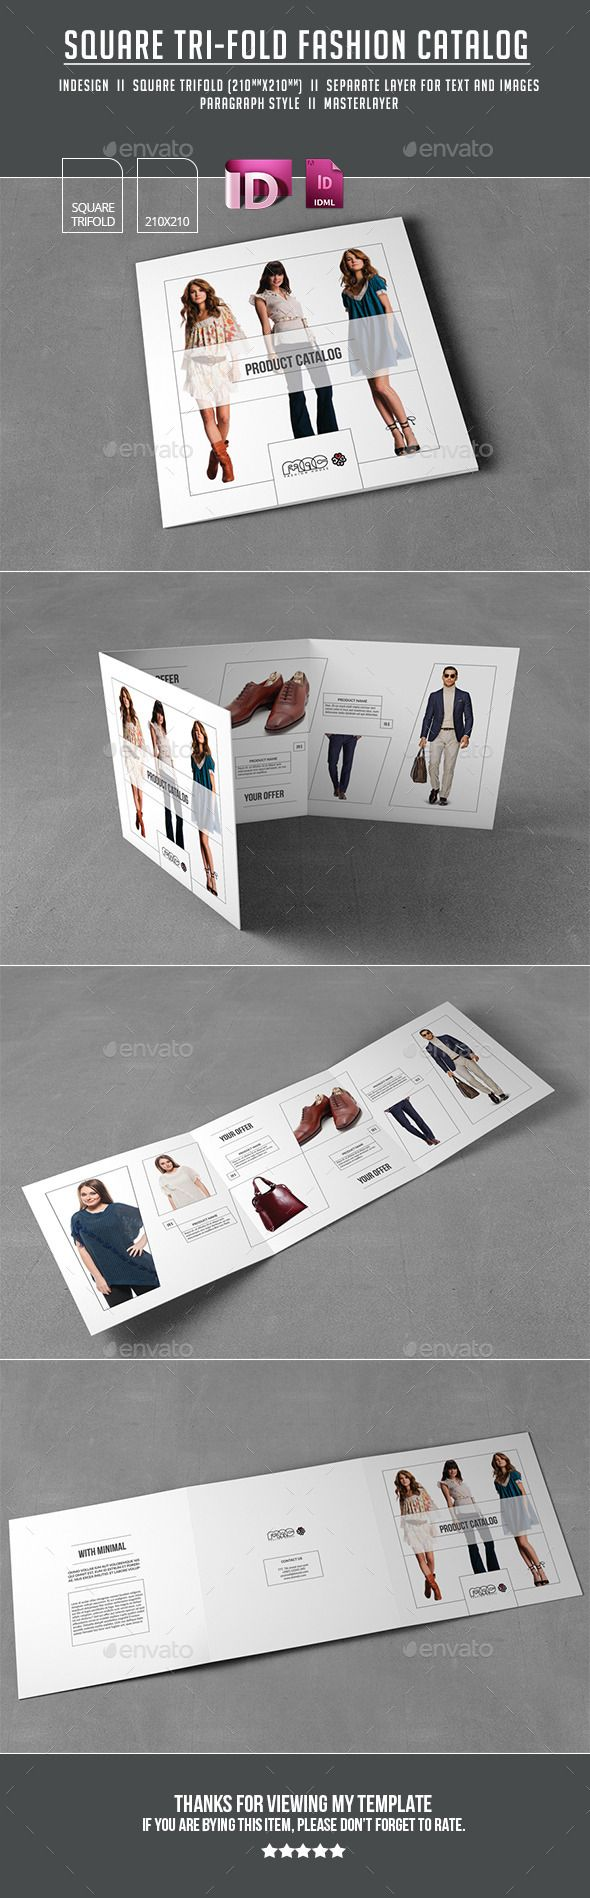 Trifold Brochure by ashuras sharif This is a Minimal Fashion Brochure Template This template are Square tri fold layout Suitable for modern fashion house